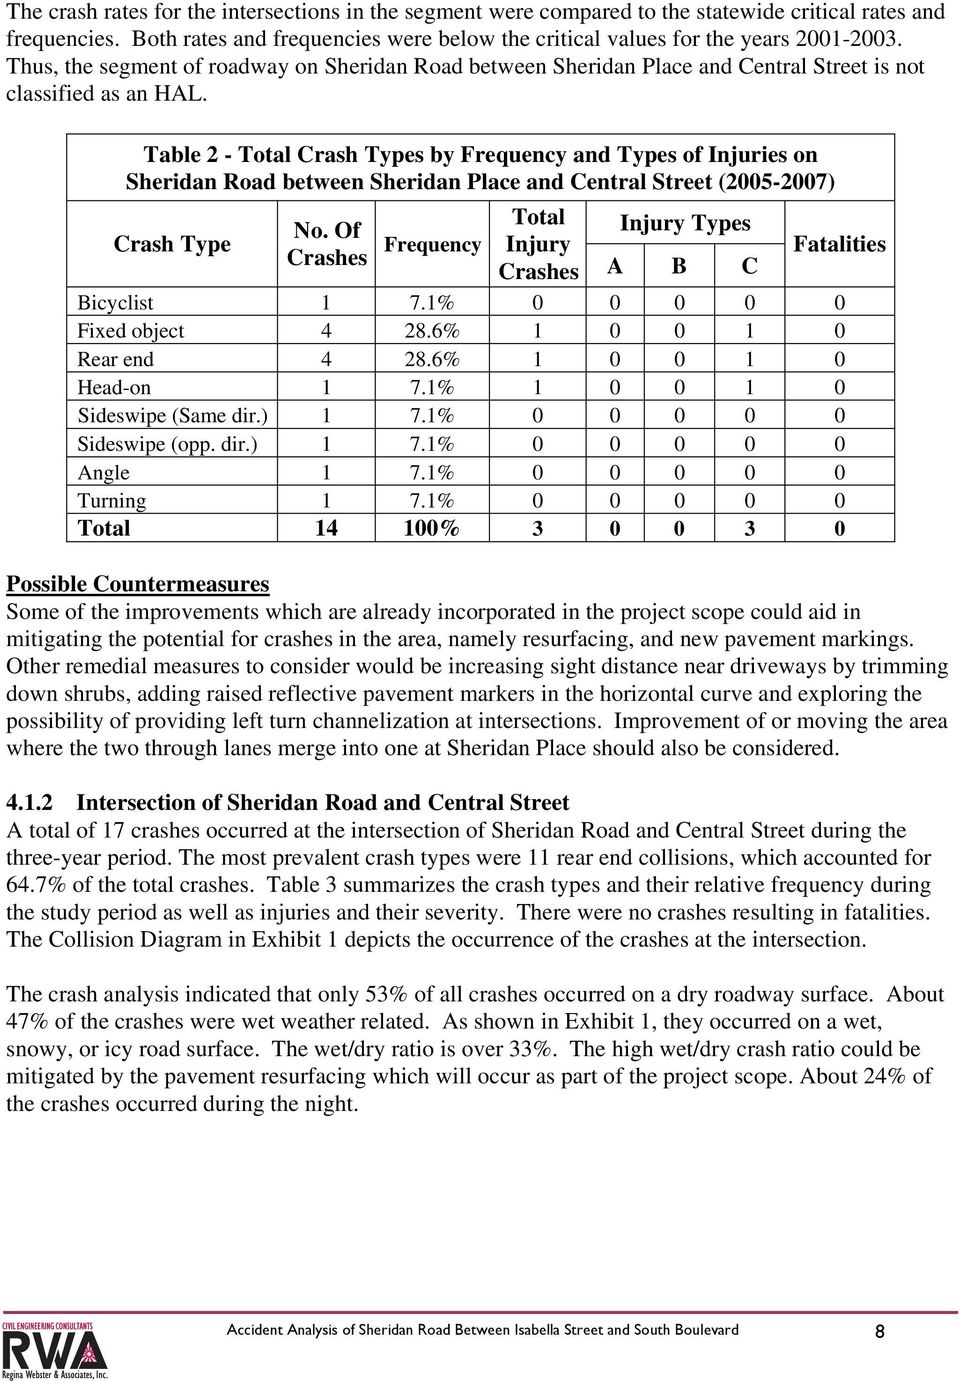 Table 2 - Total s by Frequency and Types of Injuries on Sheridan Road between Sheridan Place and Central Street (2005-2007) Frequency Total Types Bicyclist 1 7.1% 0 0 0 0 0 Fixed object 4 28.